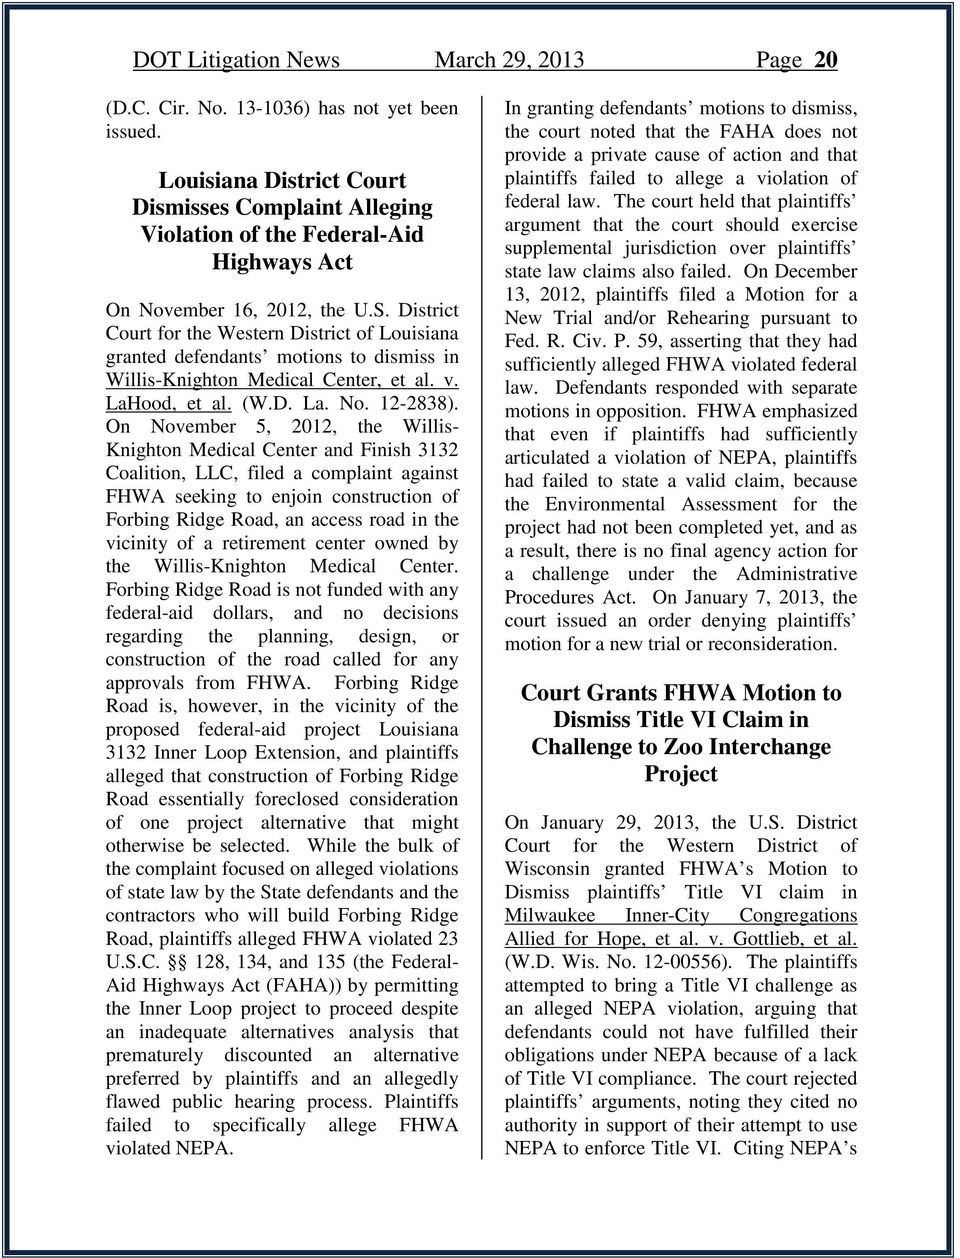 District Court for the Western District of Louisiana granted defendants motions to dismiss in Willis-Knighton Medical Center, et al. v. LaHood, et al. (W.D. La. No. 12-2838).